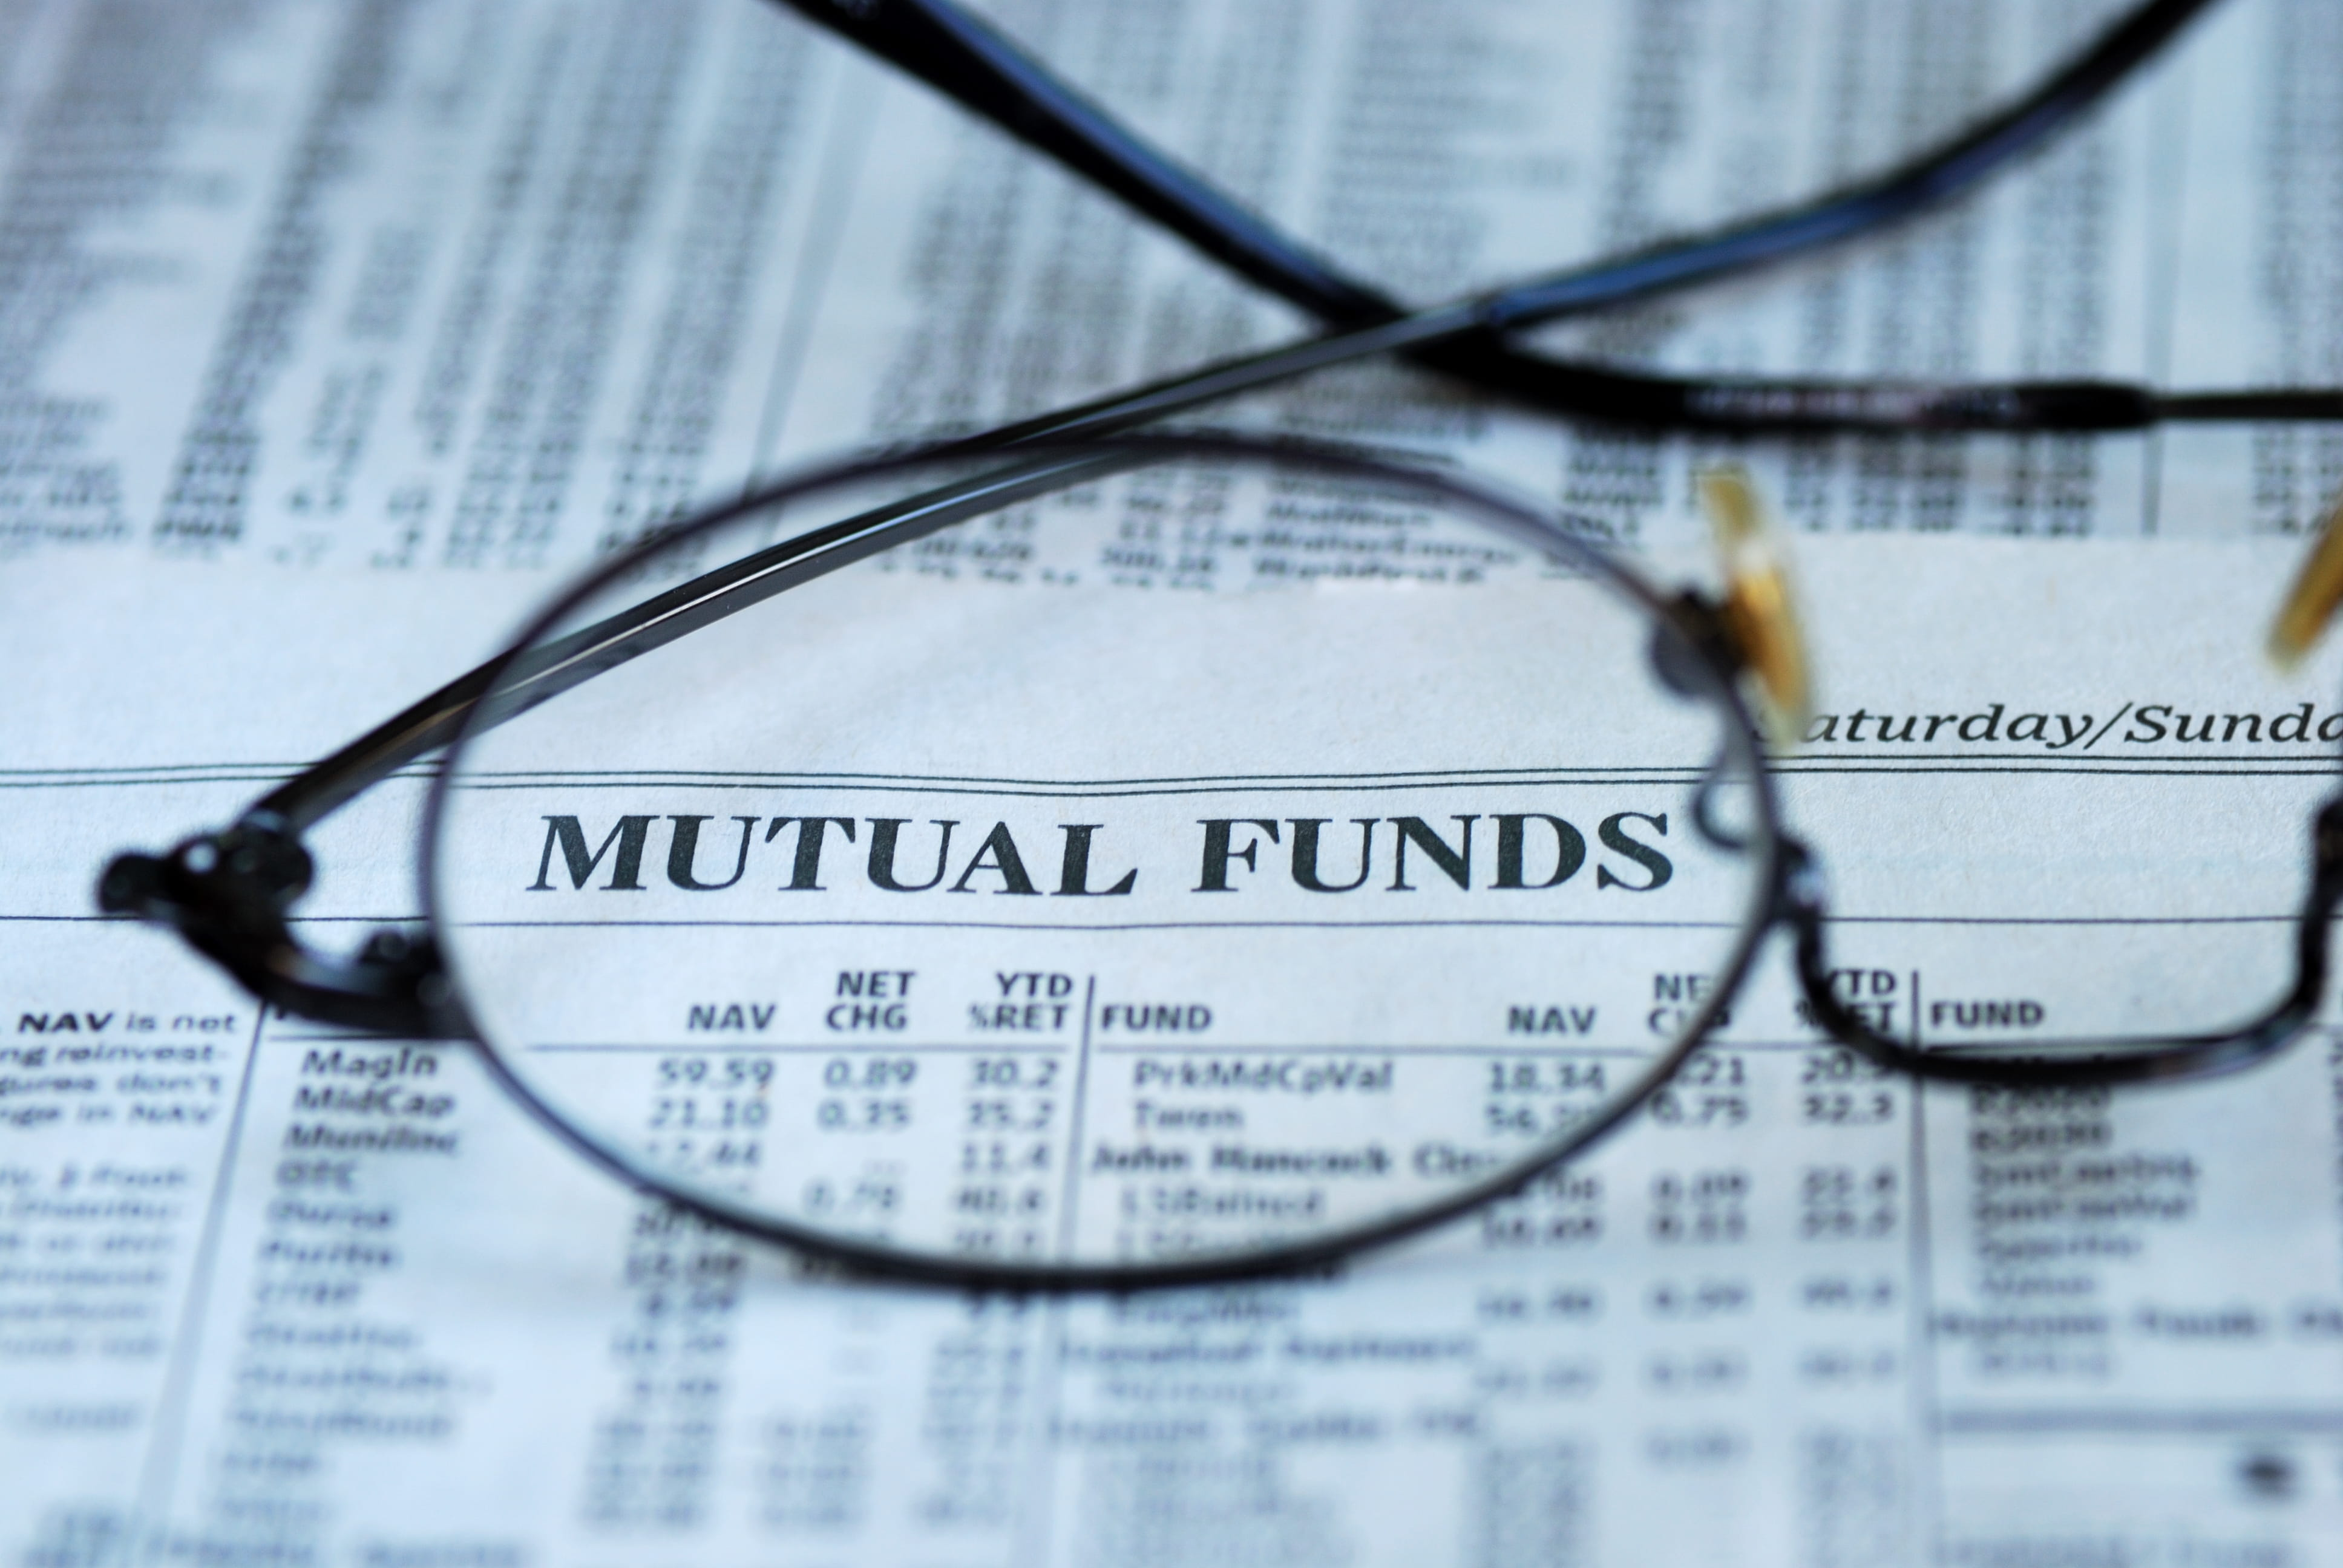 glasses focused on mutual fund page of newspaper